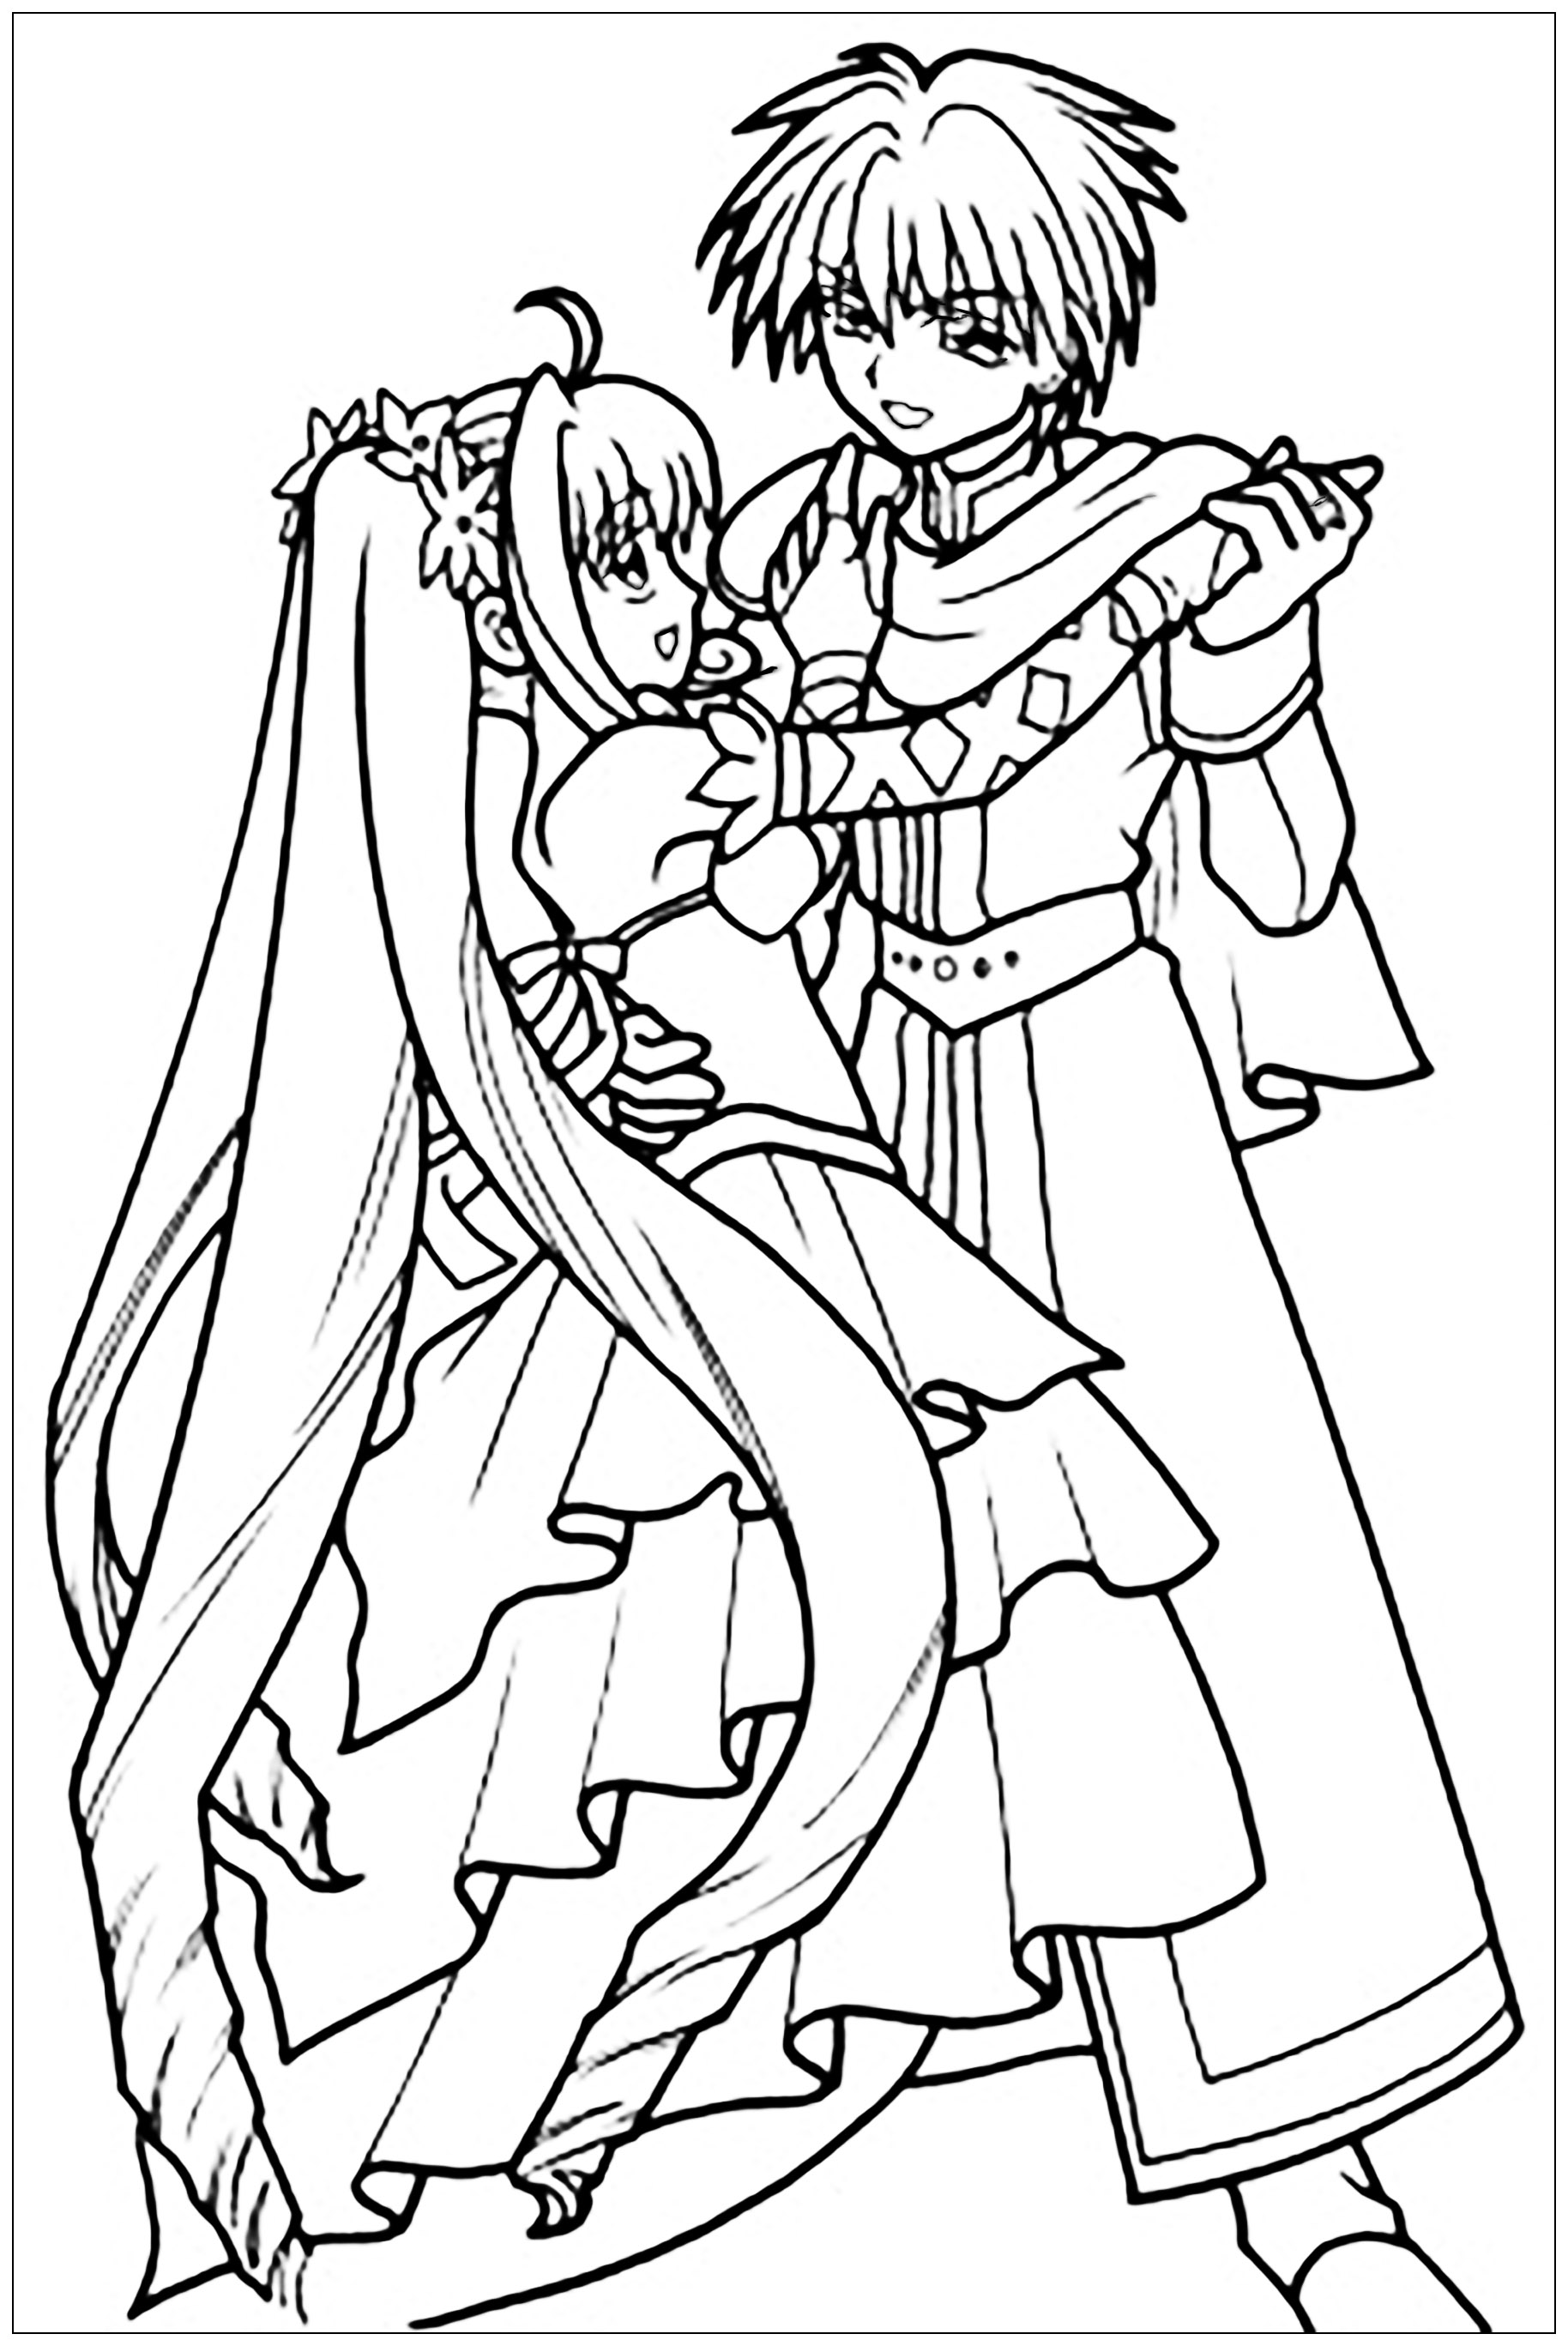 Manga free to color for kids - Manga Kids Coloring Pages